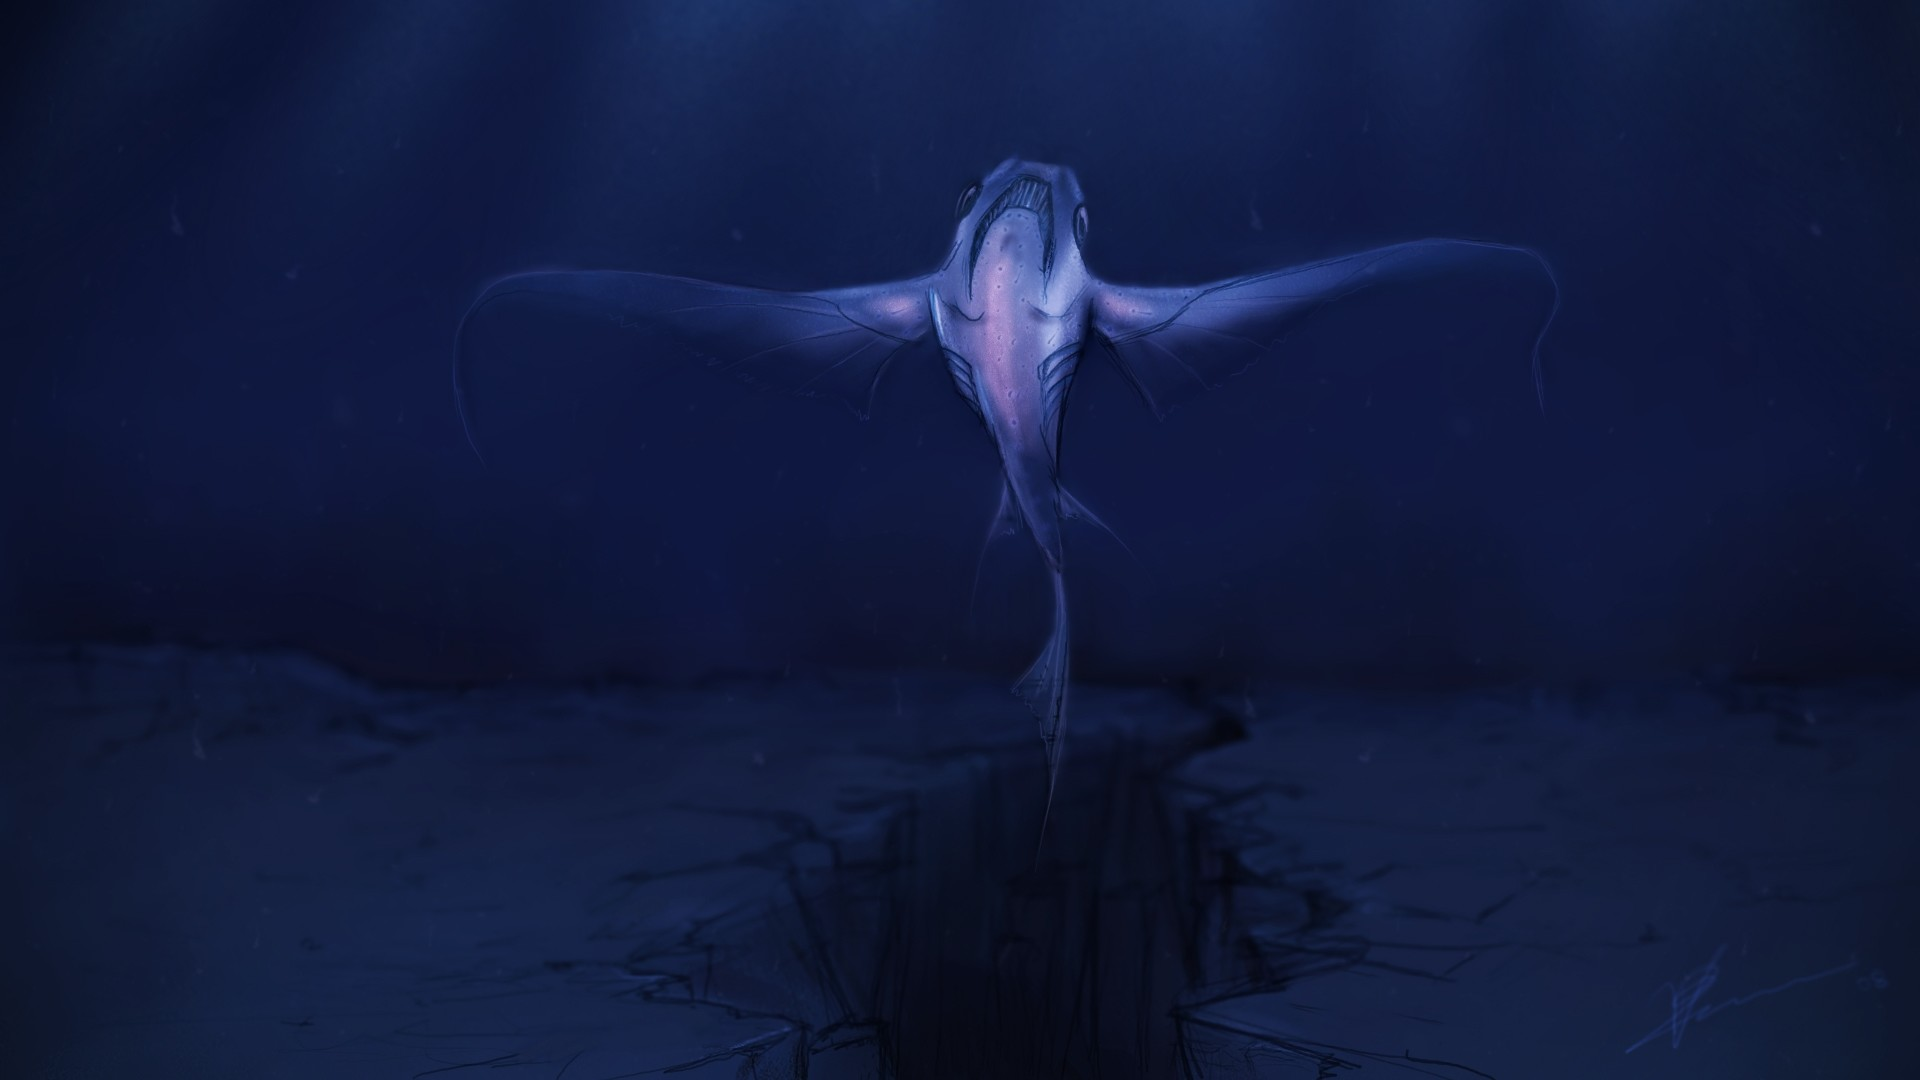 Deep Sea Angel - Fantasy &- Abstract Background Wallpapers on ...